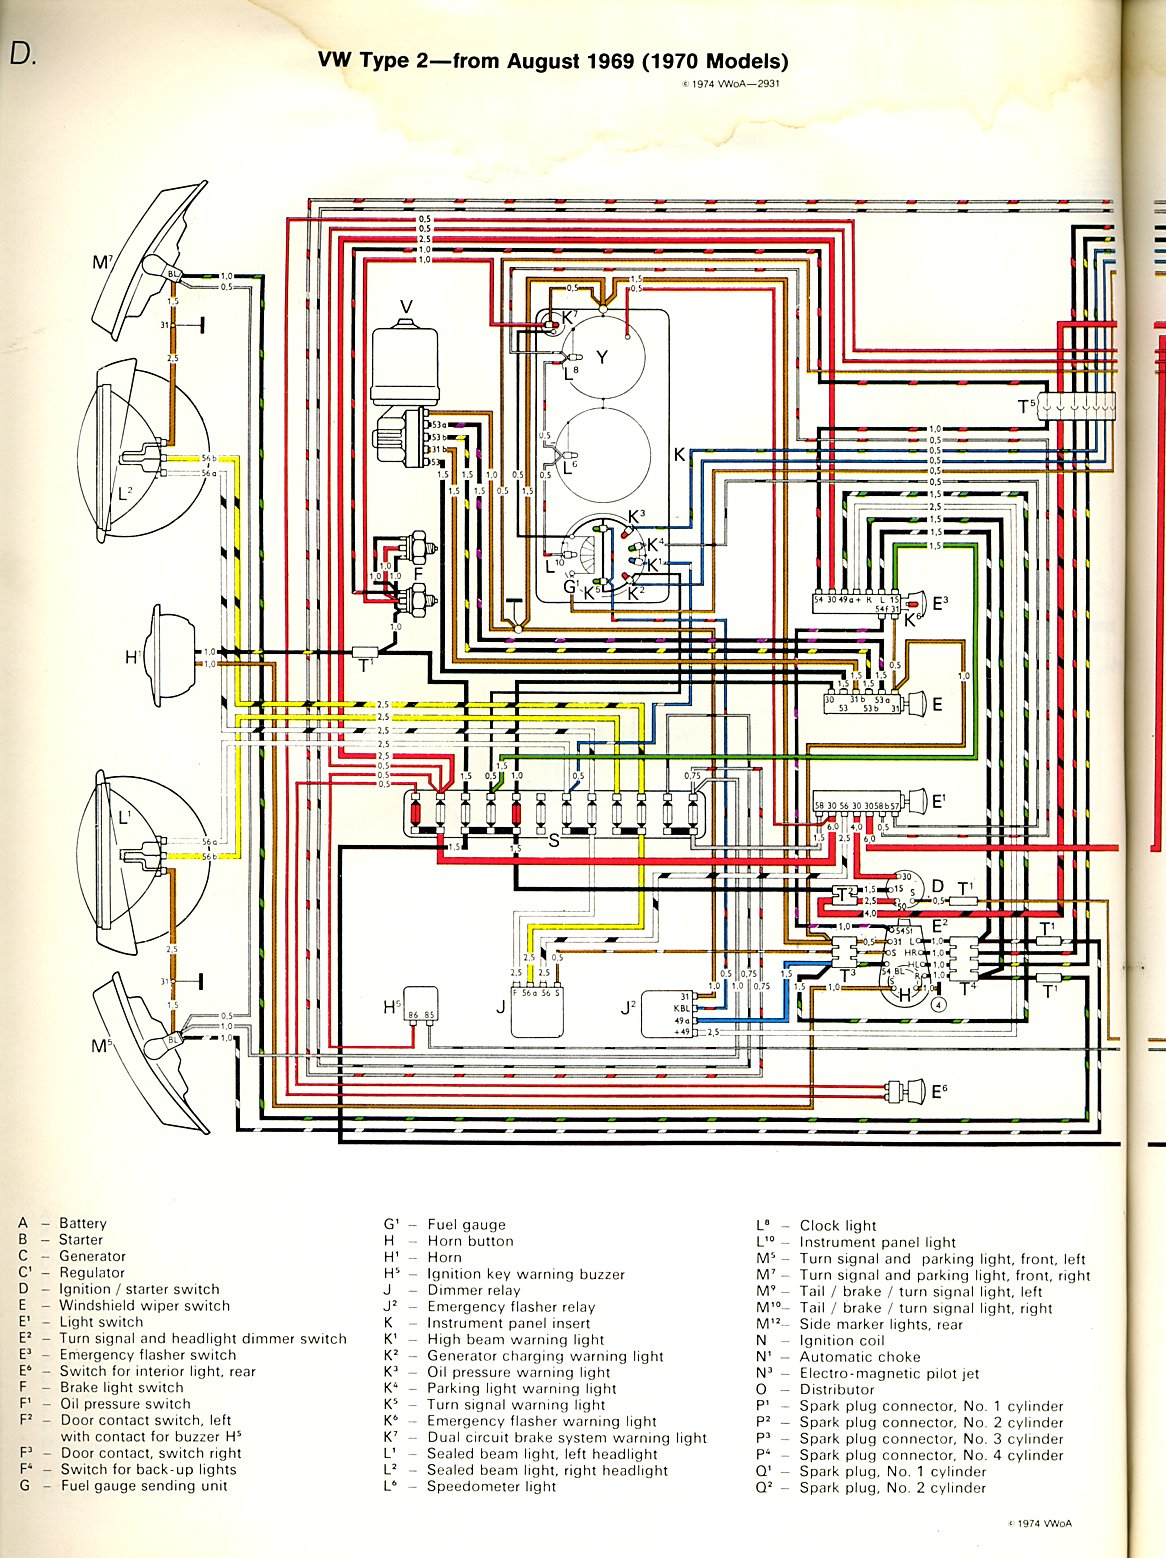 baybus_70a 28 [ vw bus wiring diagram ] 1977 vw bus wiring diagram 1976 vw 1968 vw type 3 wiring diagram at gsmx.co